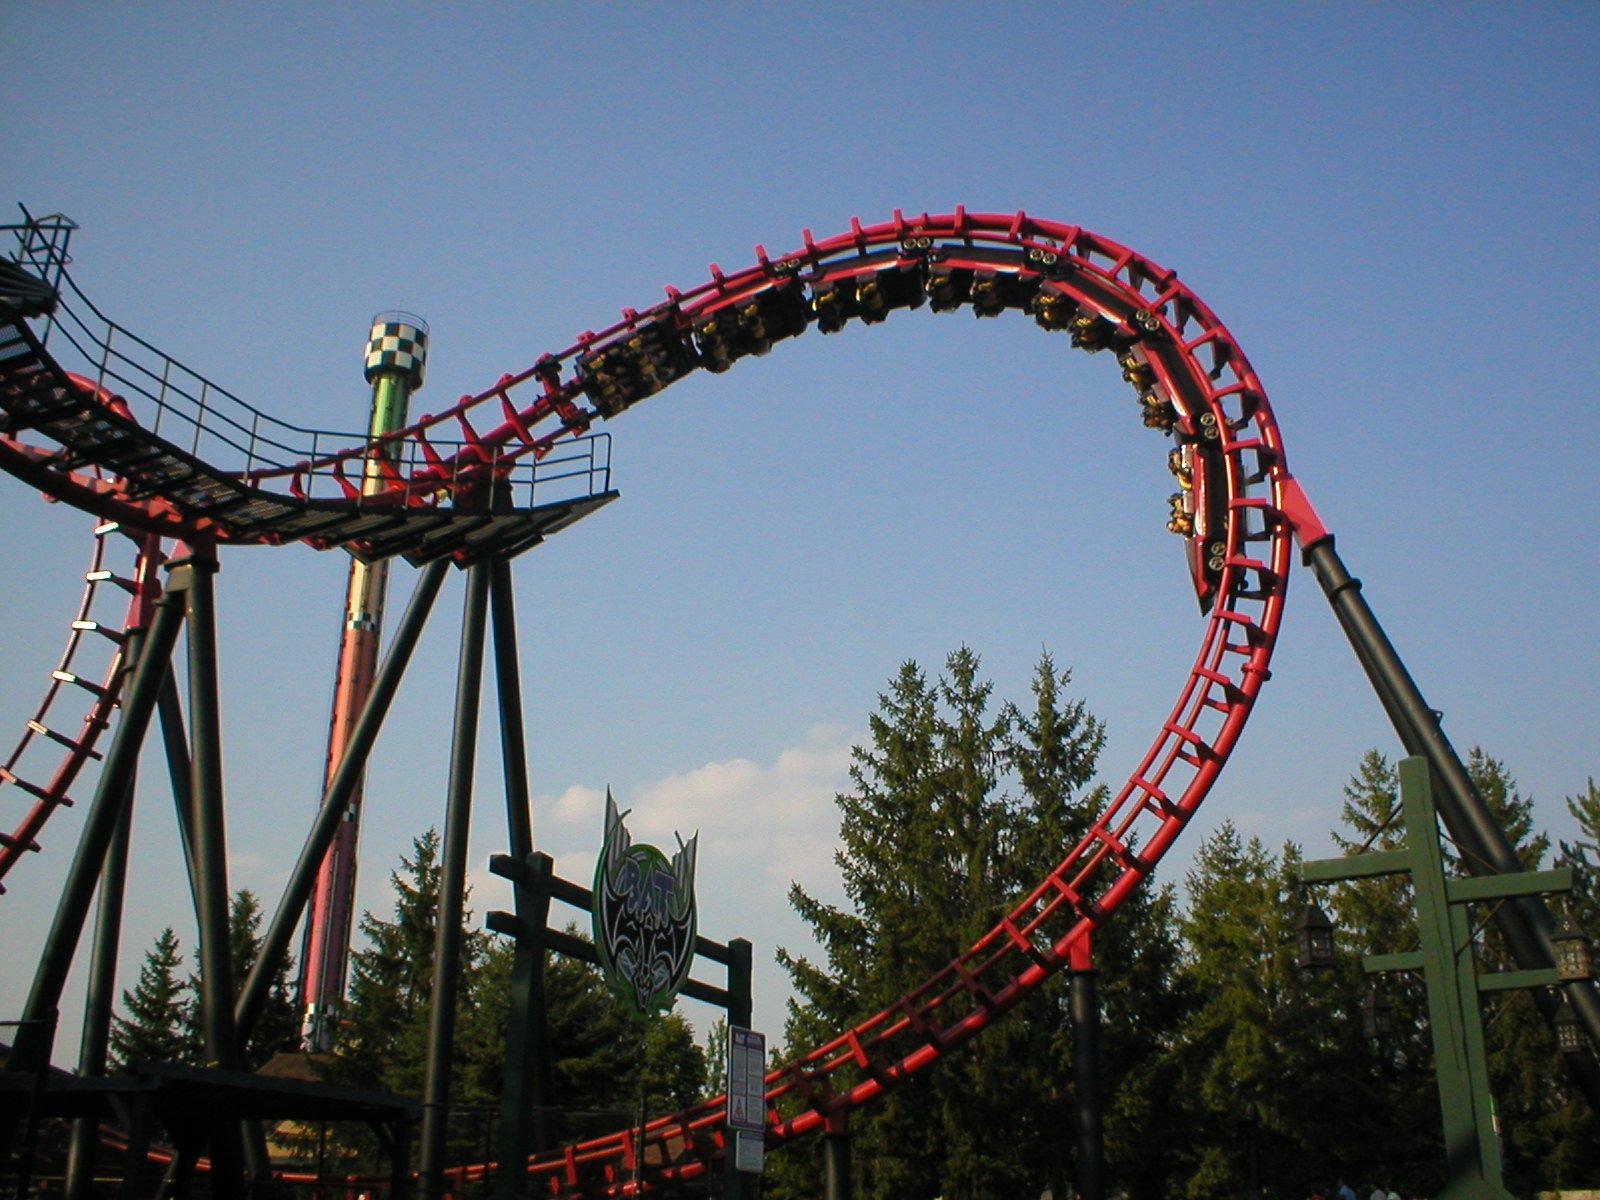 File:The Bat at Canada's Wonderland.jpg - Wikimedia Commons